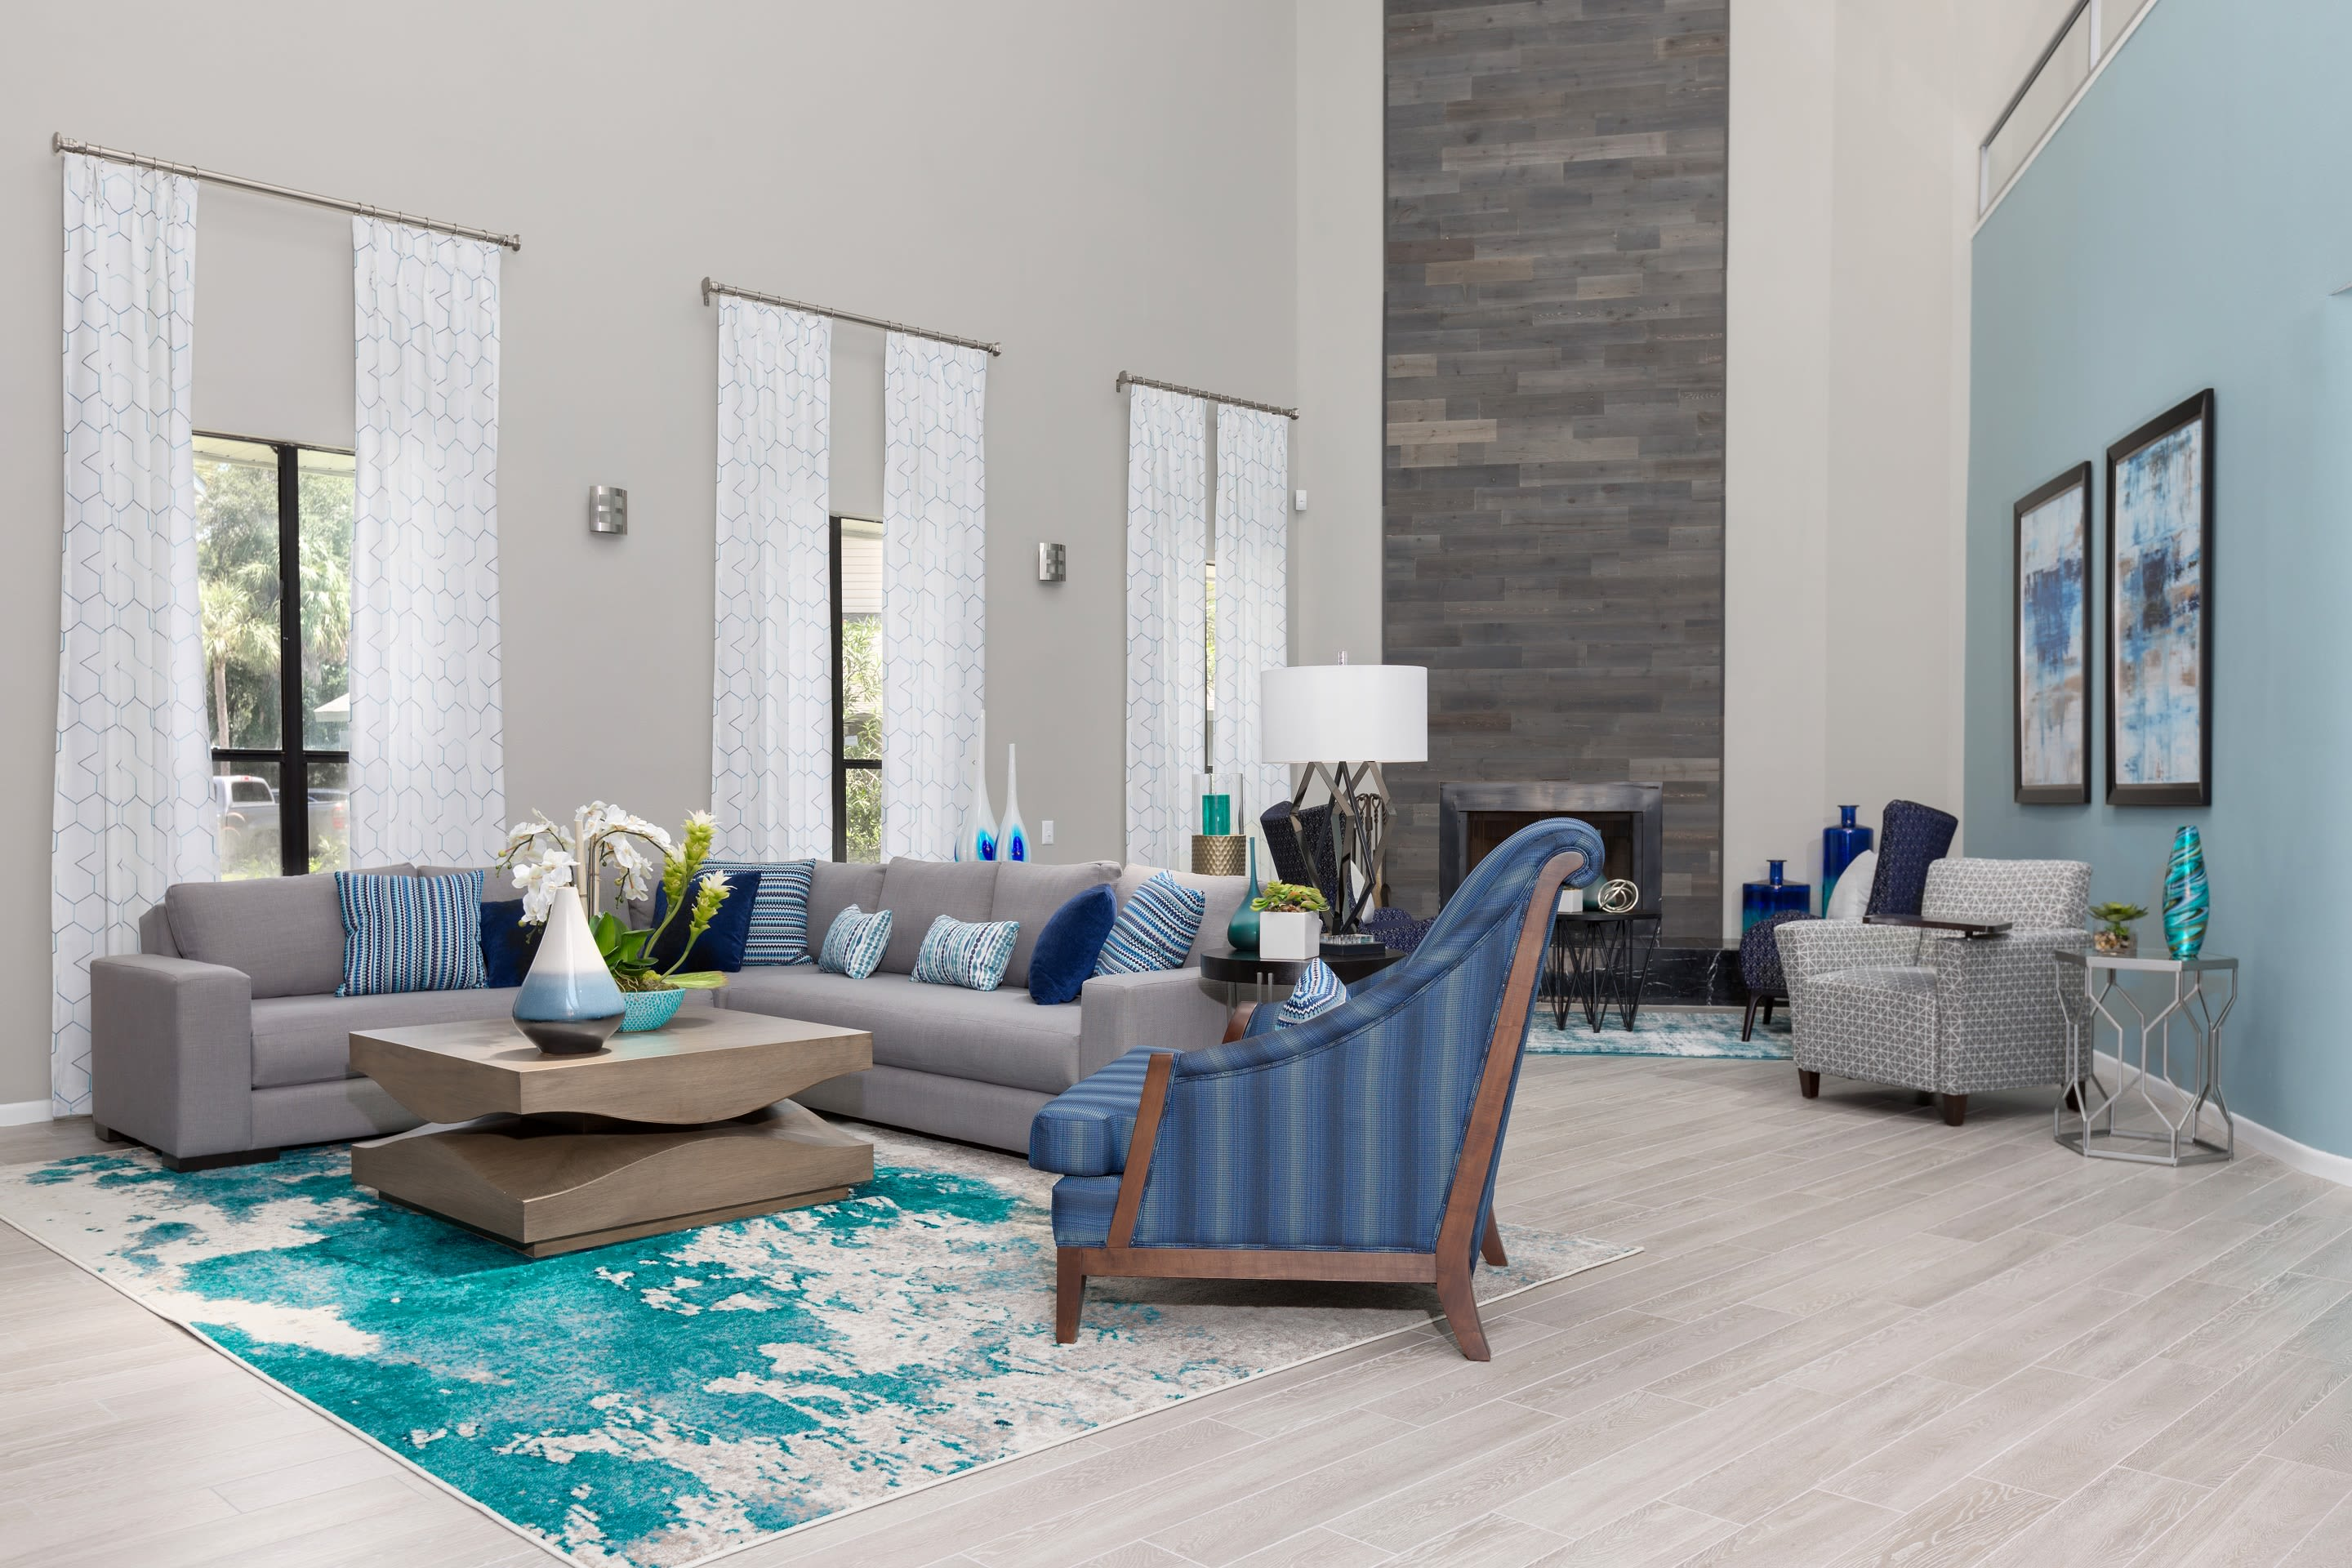 Living room with modern decor at WestEnd At 76Ten in Tampa, Florida